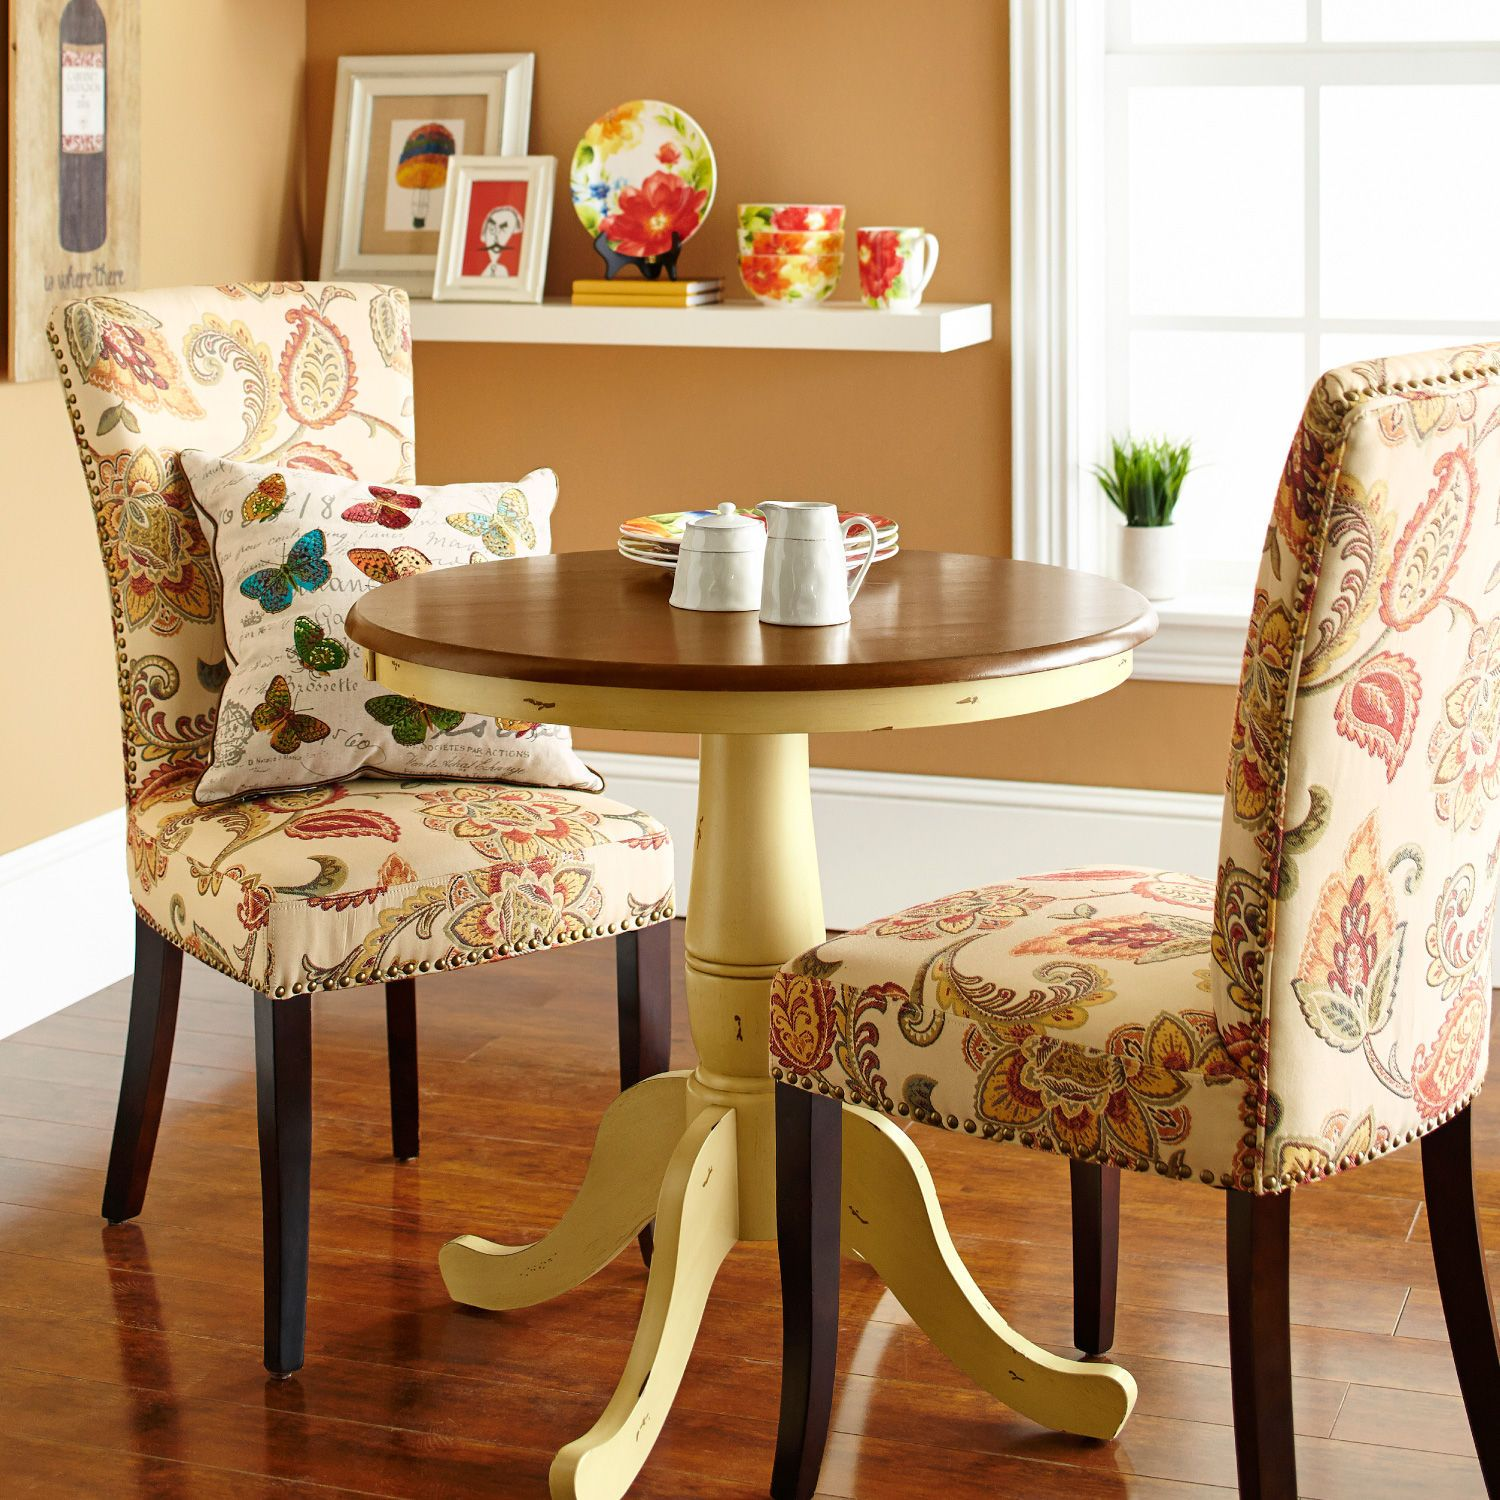 Sites Pier1 Us Site Small Dining Room Table Dining Room Table